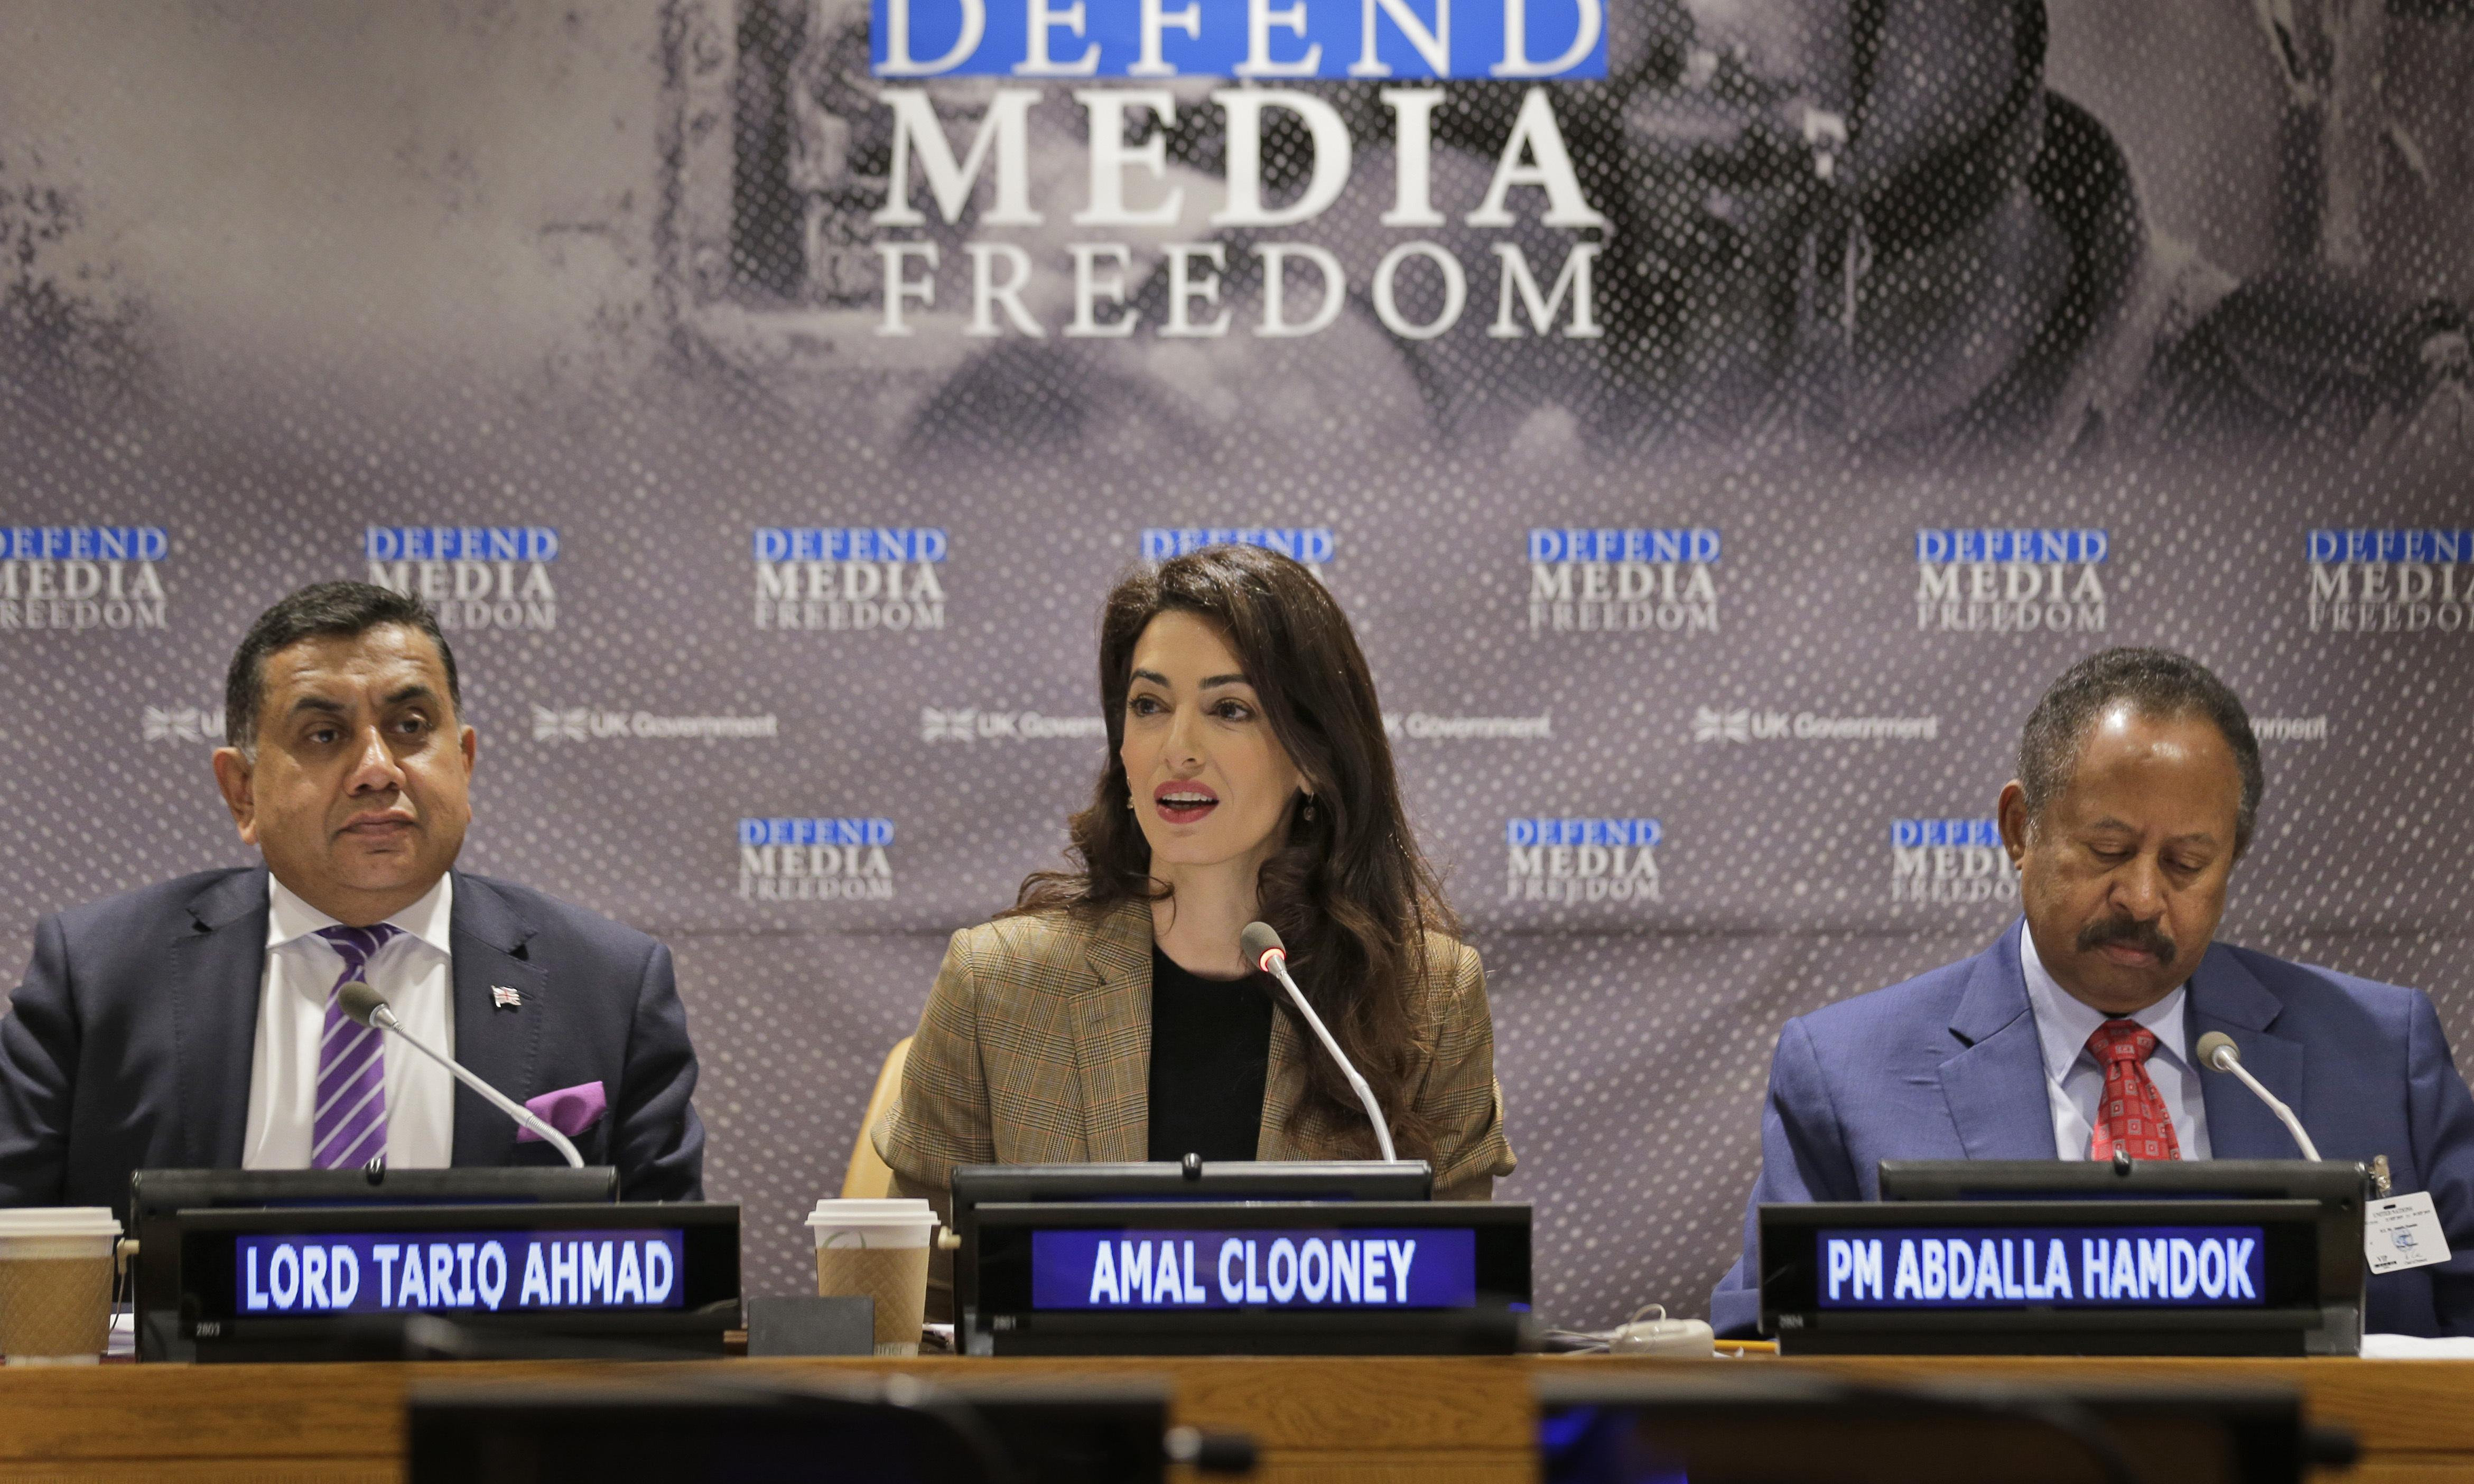 UK should be more innovative in defending press freedom, says Amal Clooney